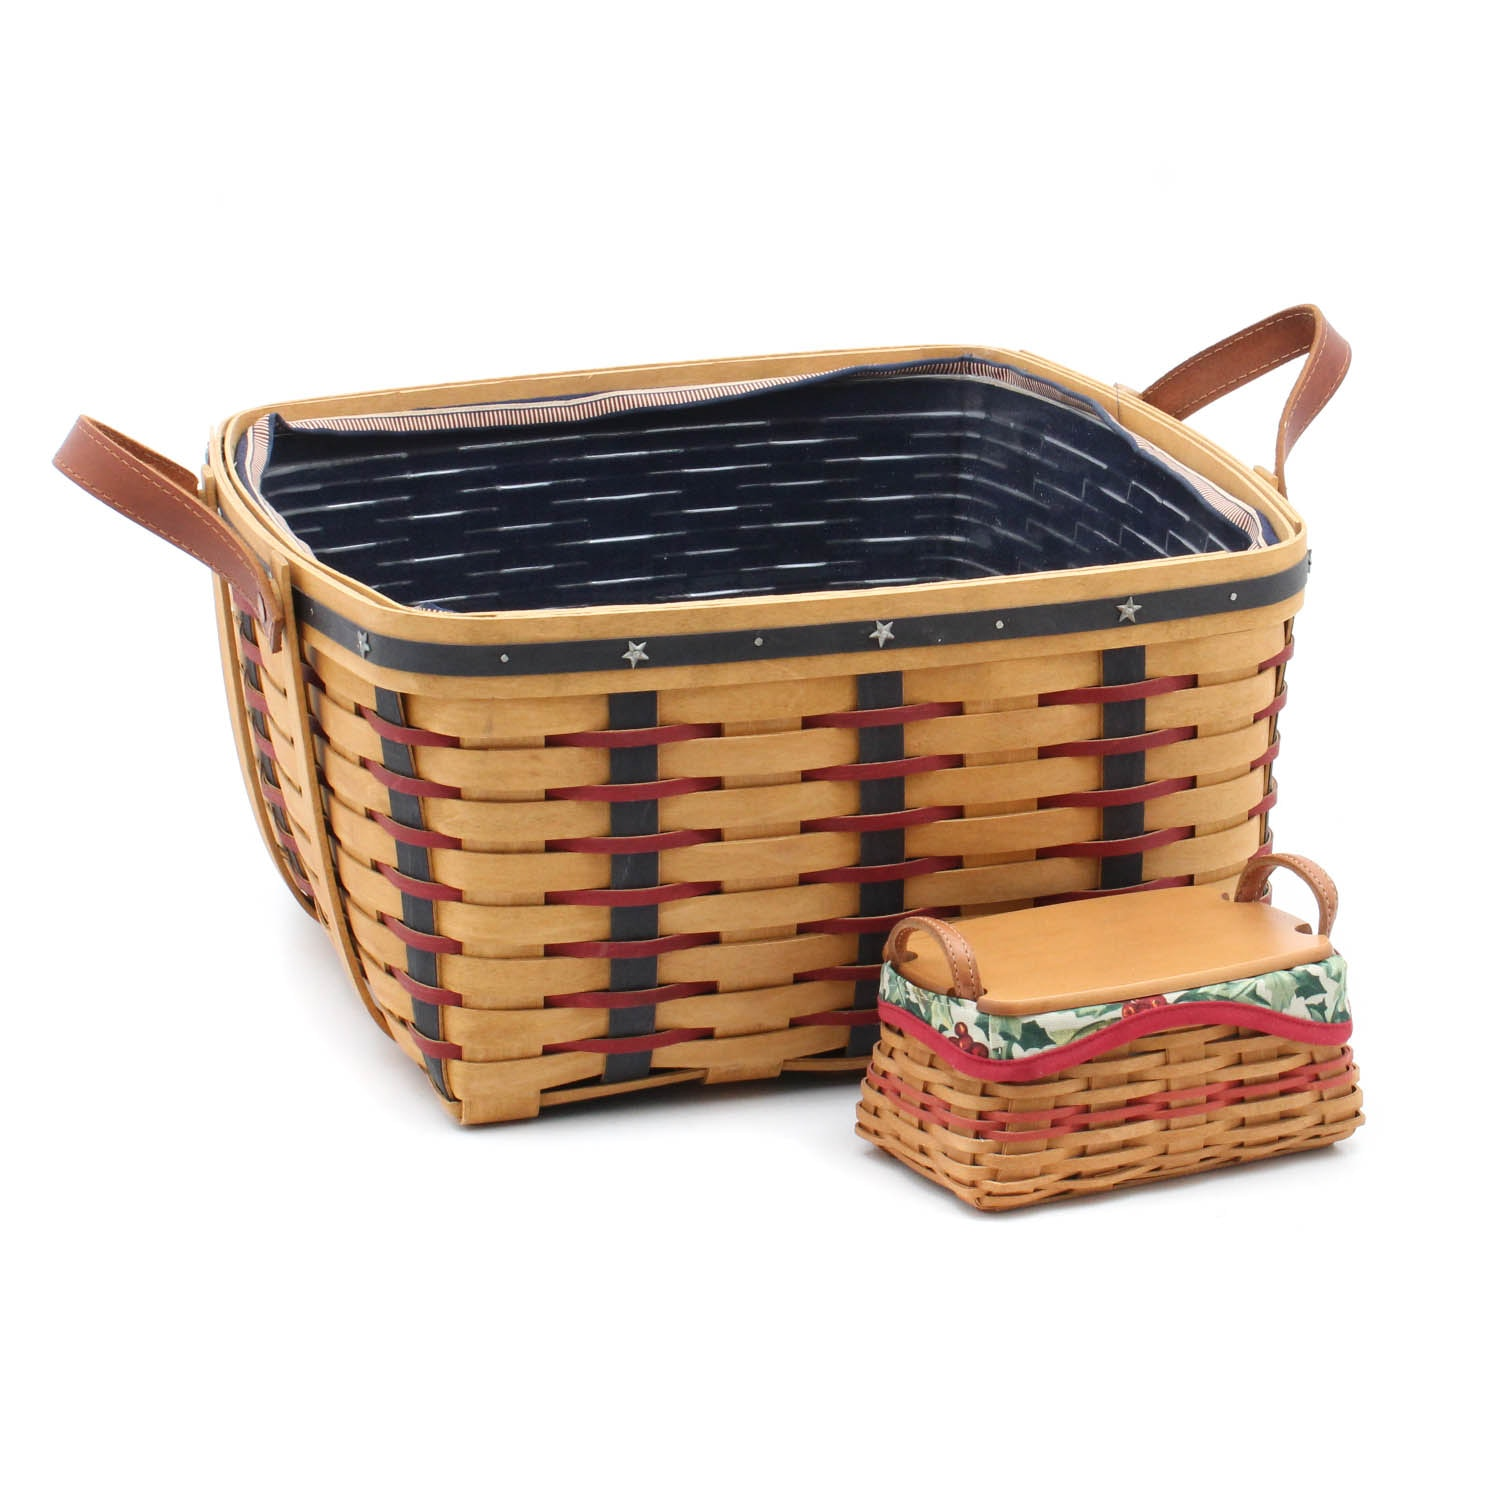 2003 Patriotic and Christmas Longaberger Baskets